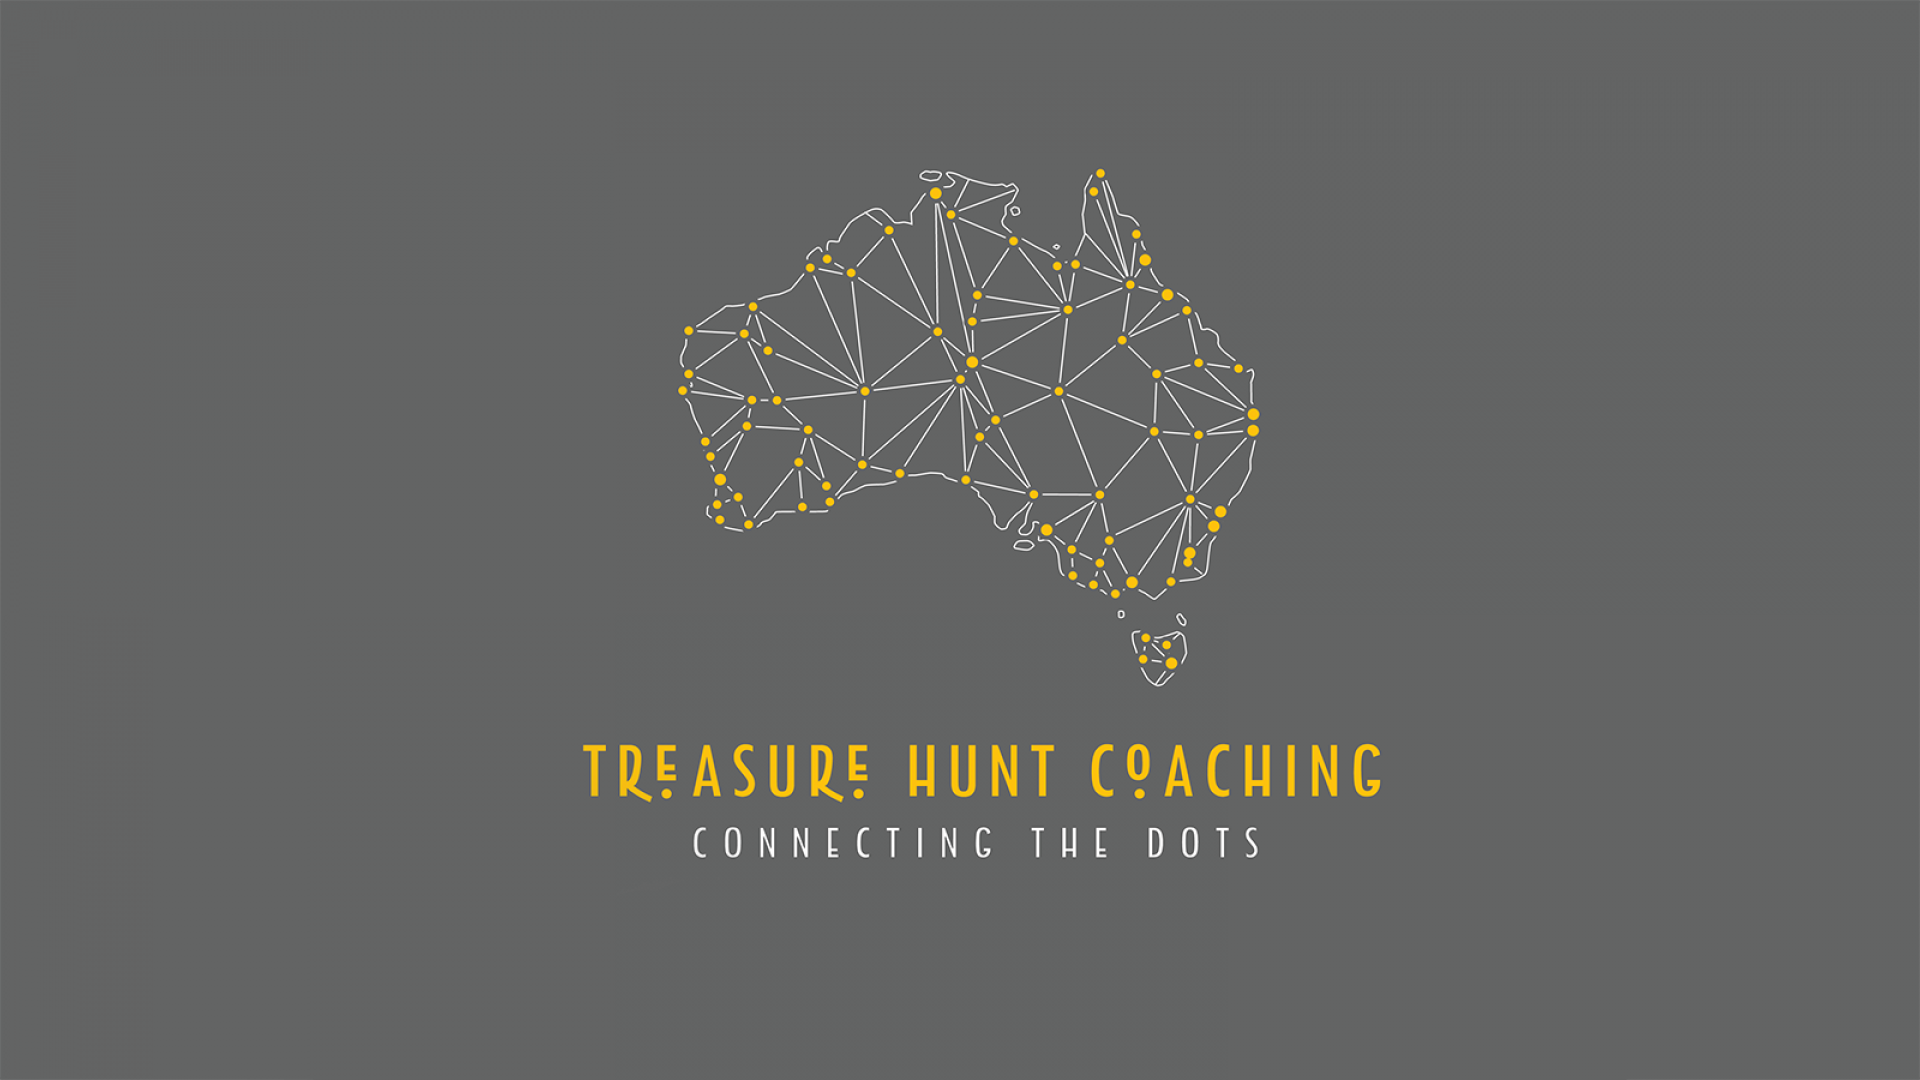 Treasure Hunt Coaching